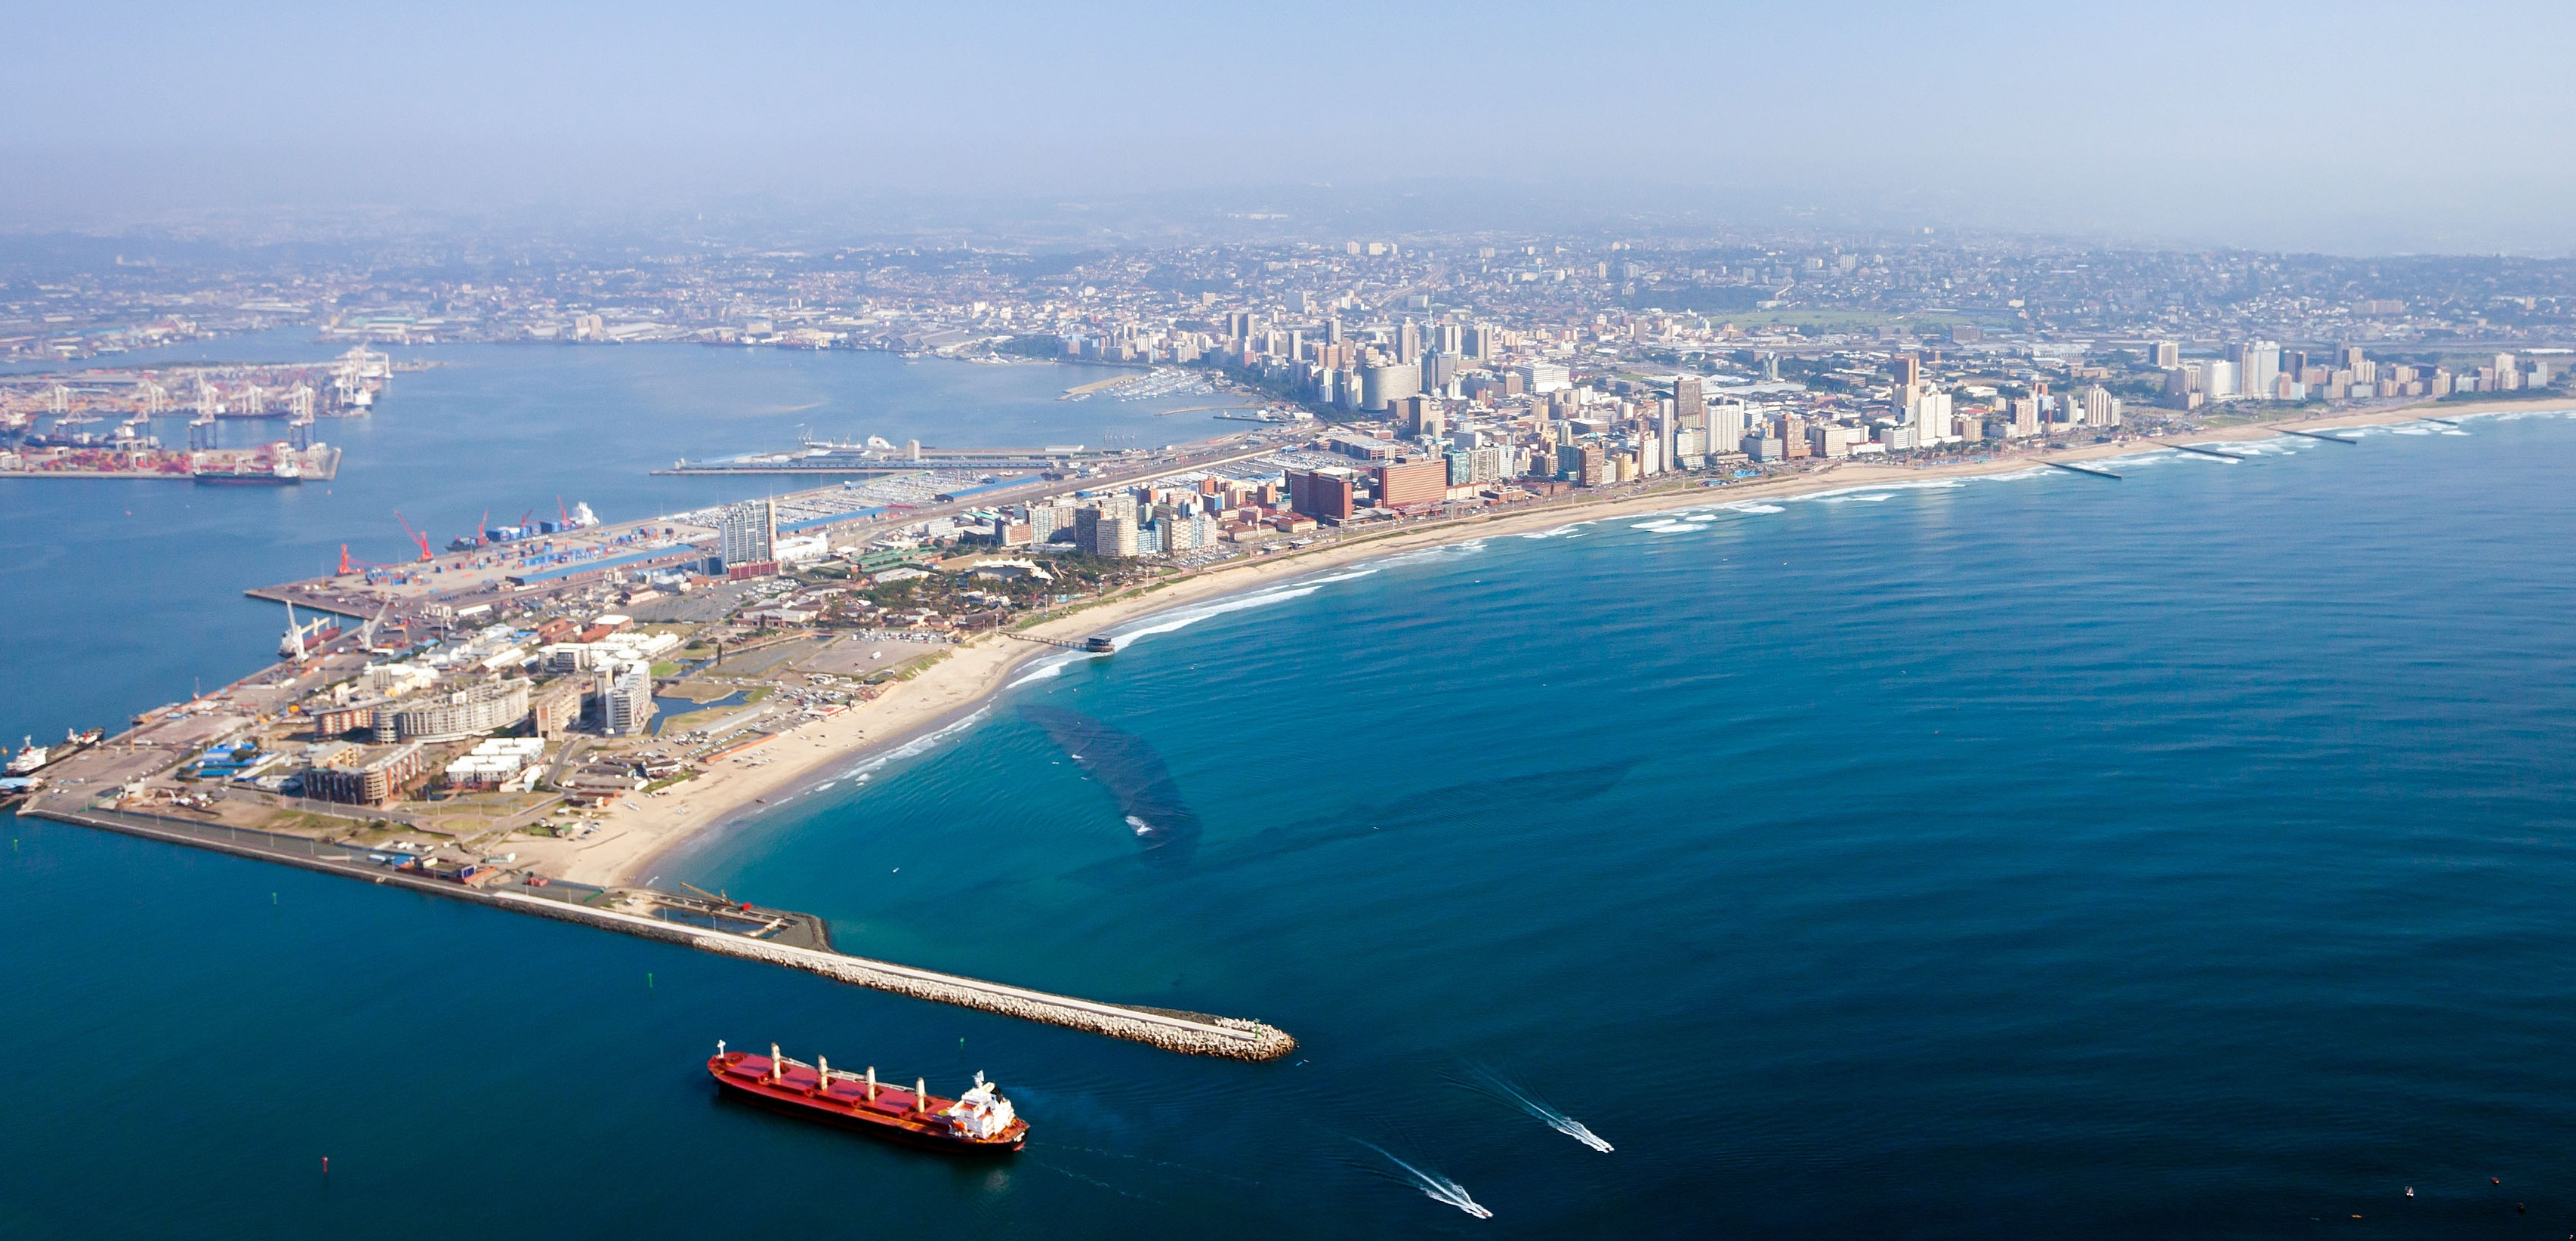 durban city and harbor, south africa